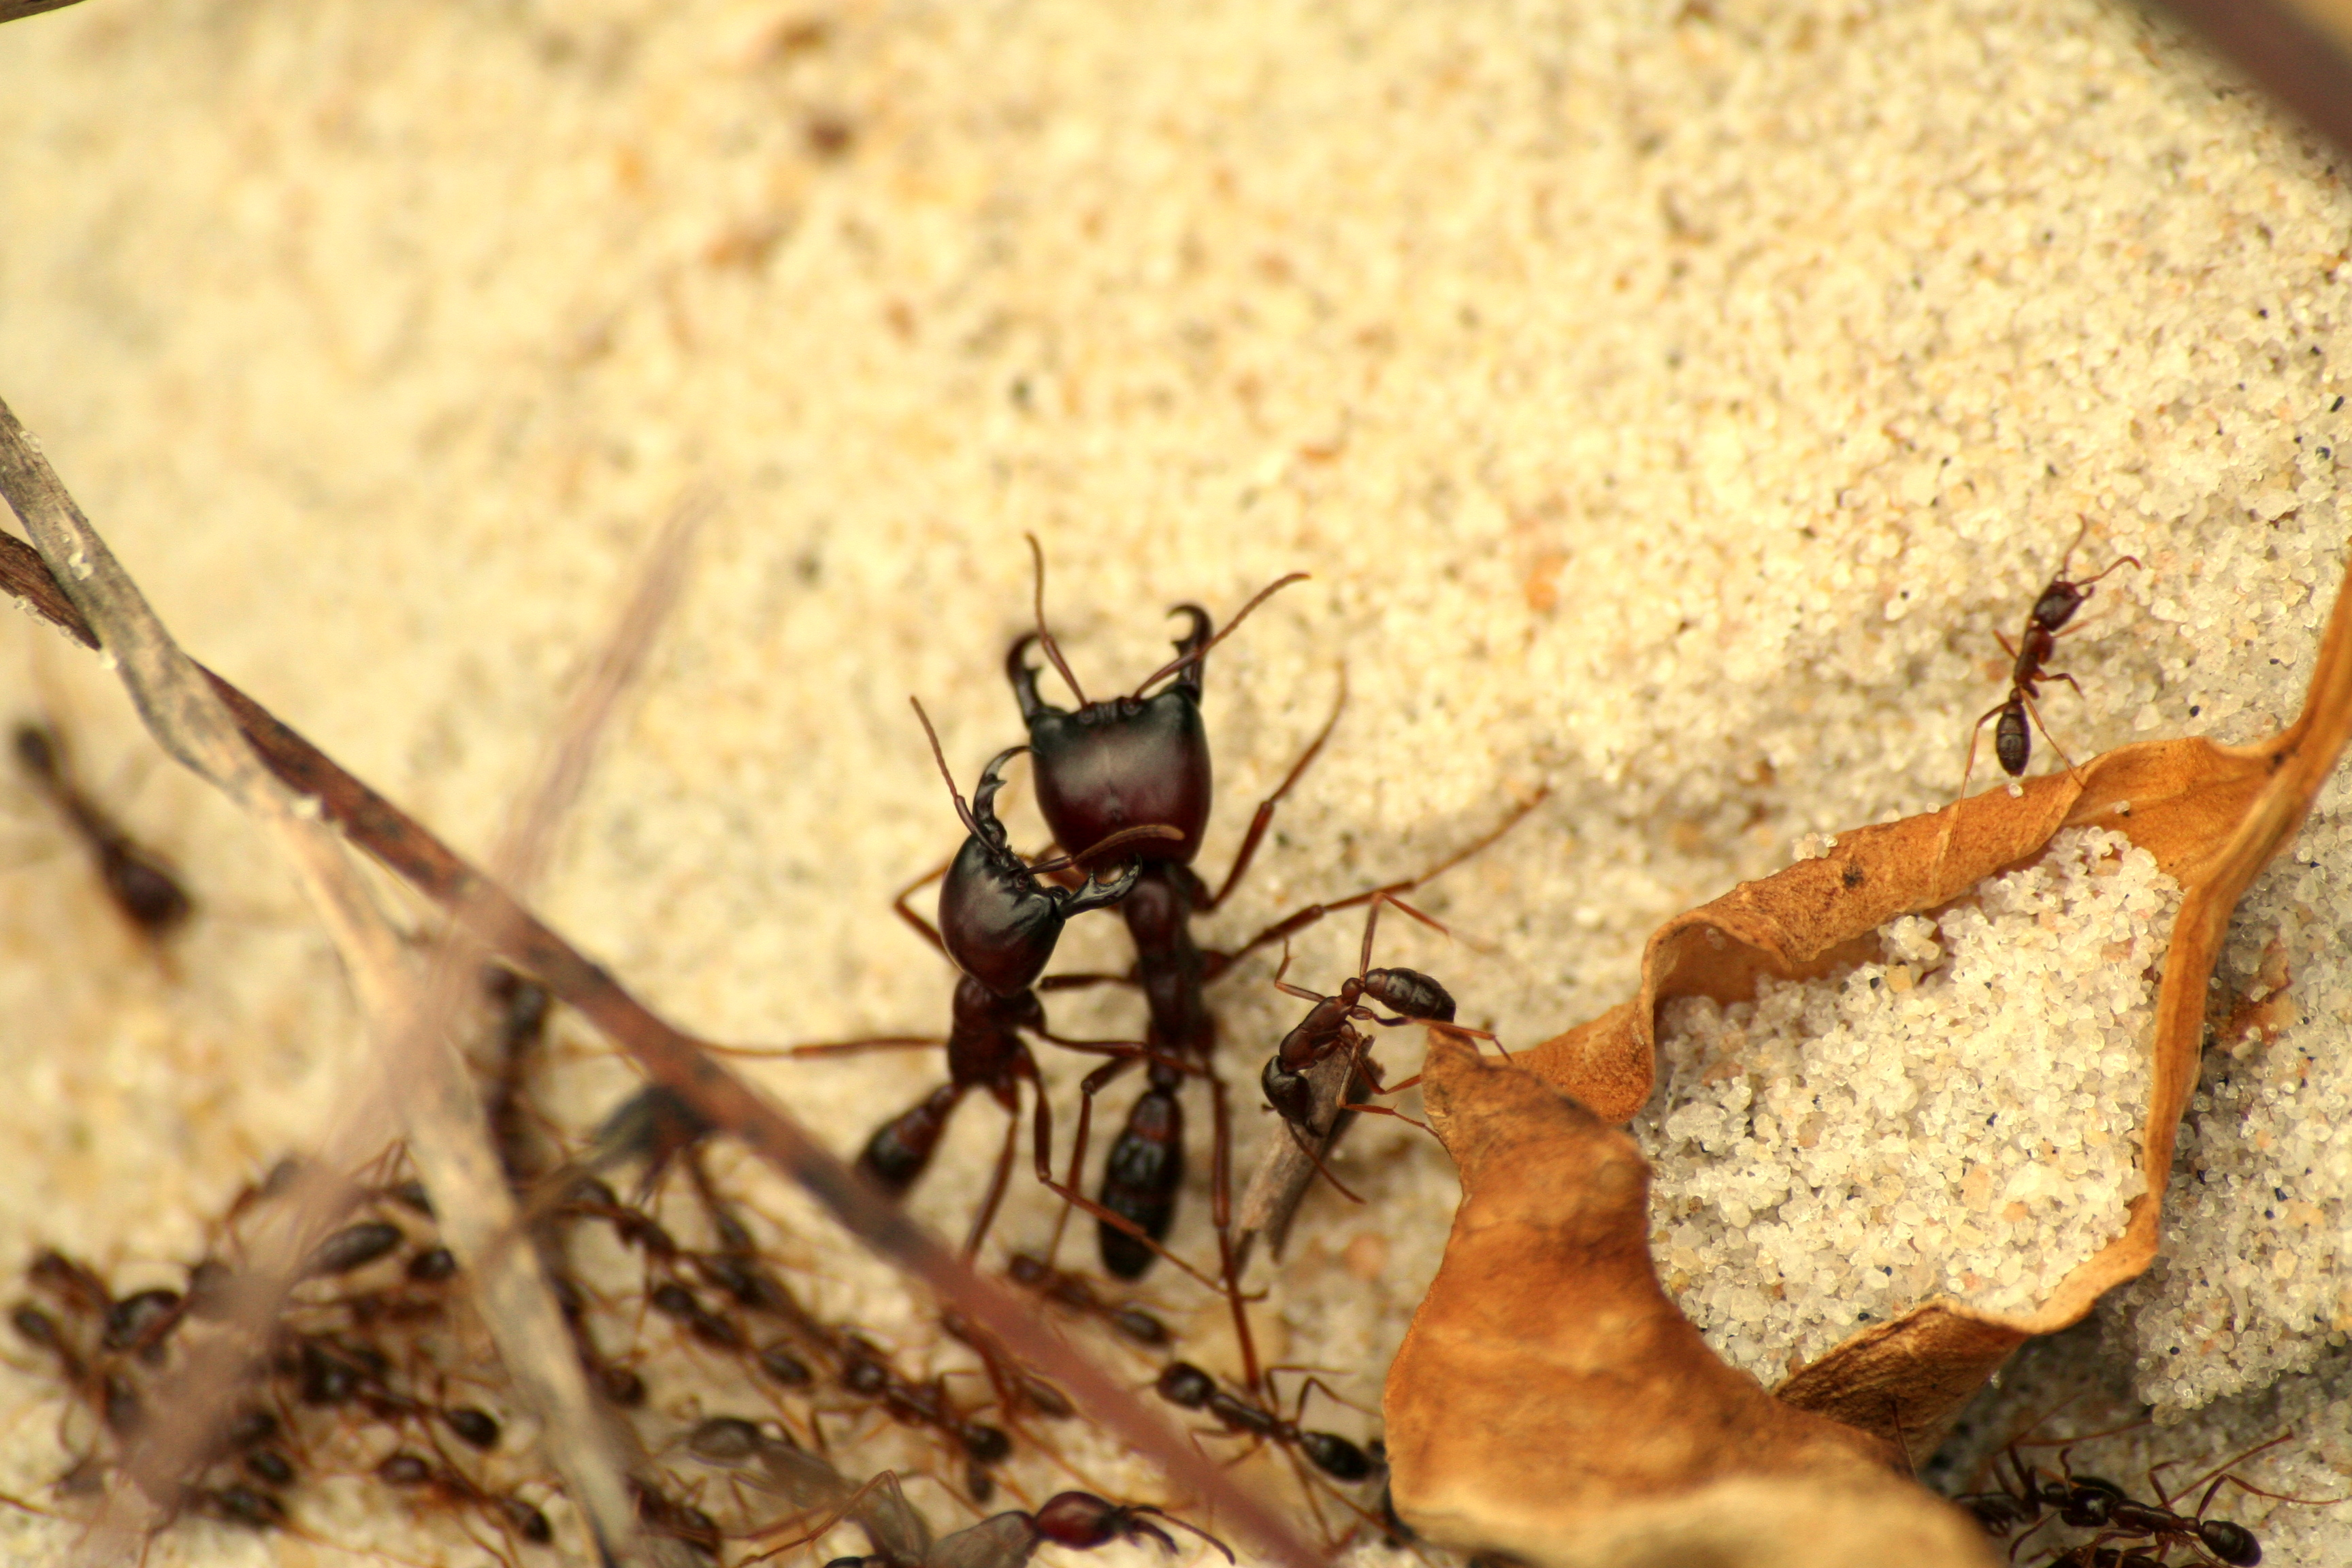 File:Army ant warriors - Gabon.jpg - Wikimedia Commons